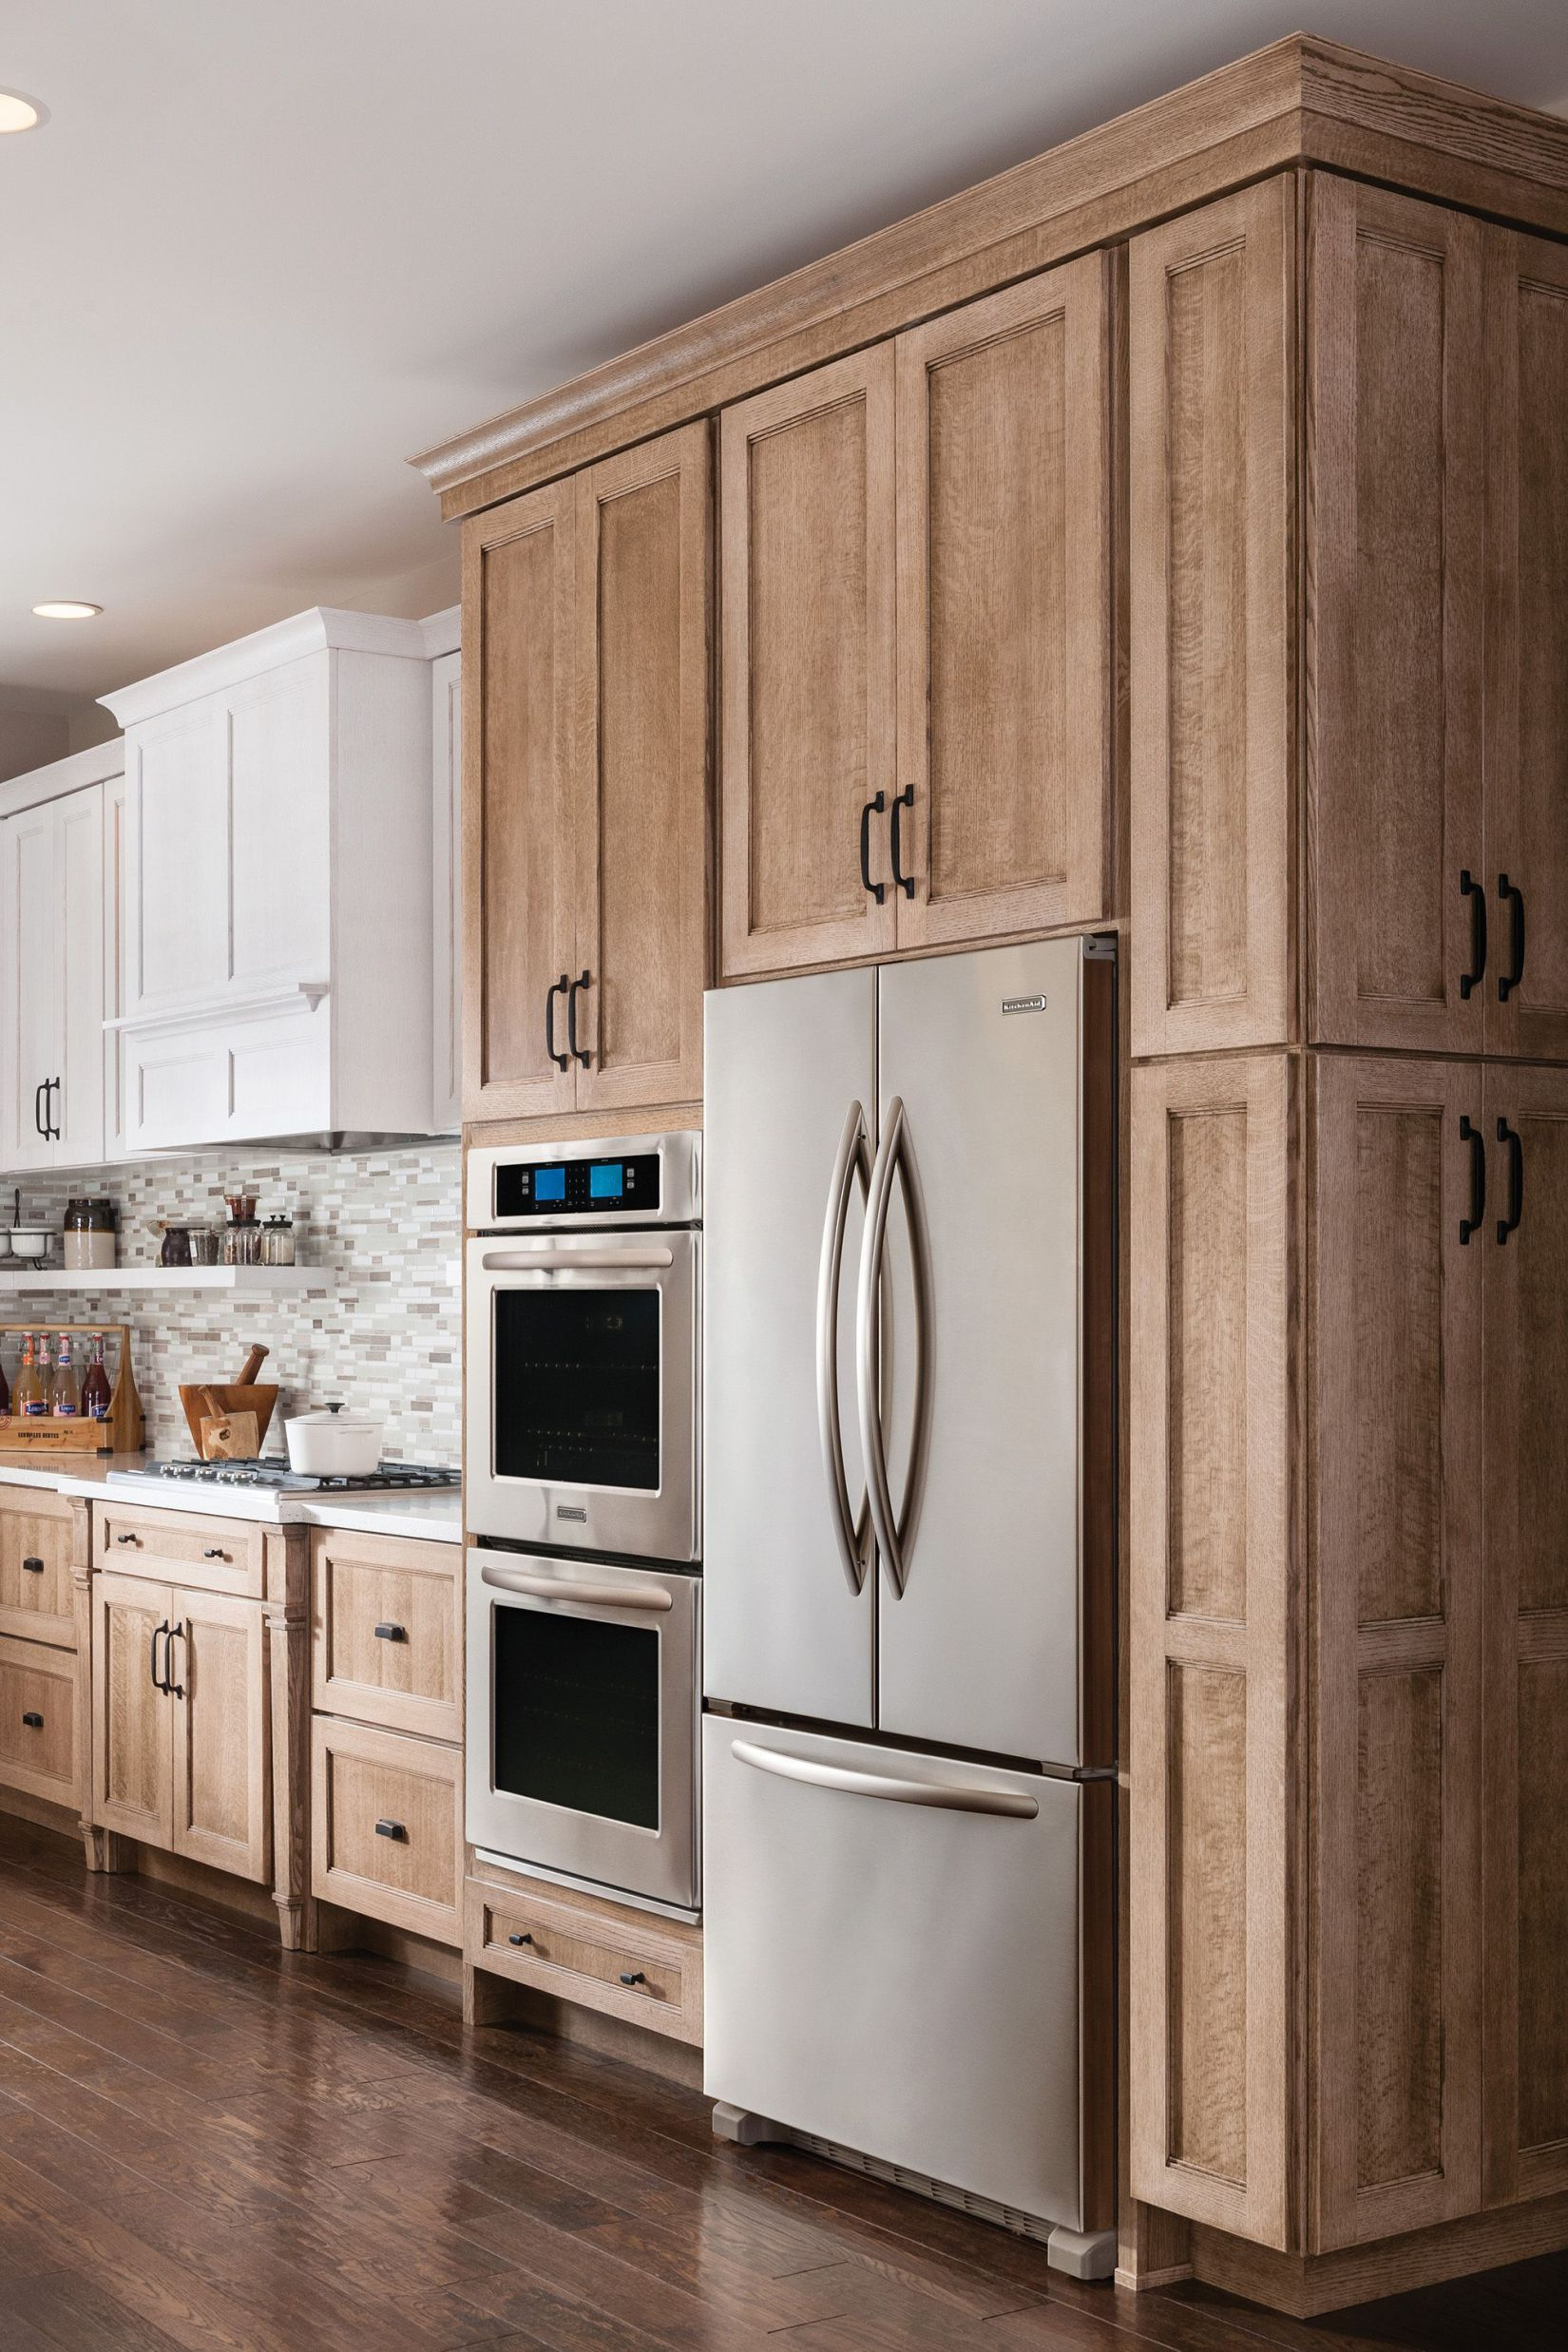 Find Out Your Dream Kitchen Cabinet Opportunities is part of Brown Kitchen cabinet - FInd out how to make your kitchen cabinets better  This articles will guide you update your kitchen with new custom, semicustom, or readytoassemble kitchen cabinetry